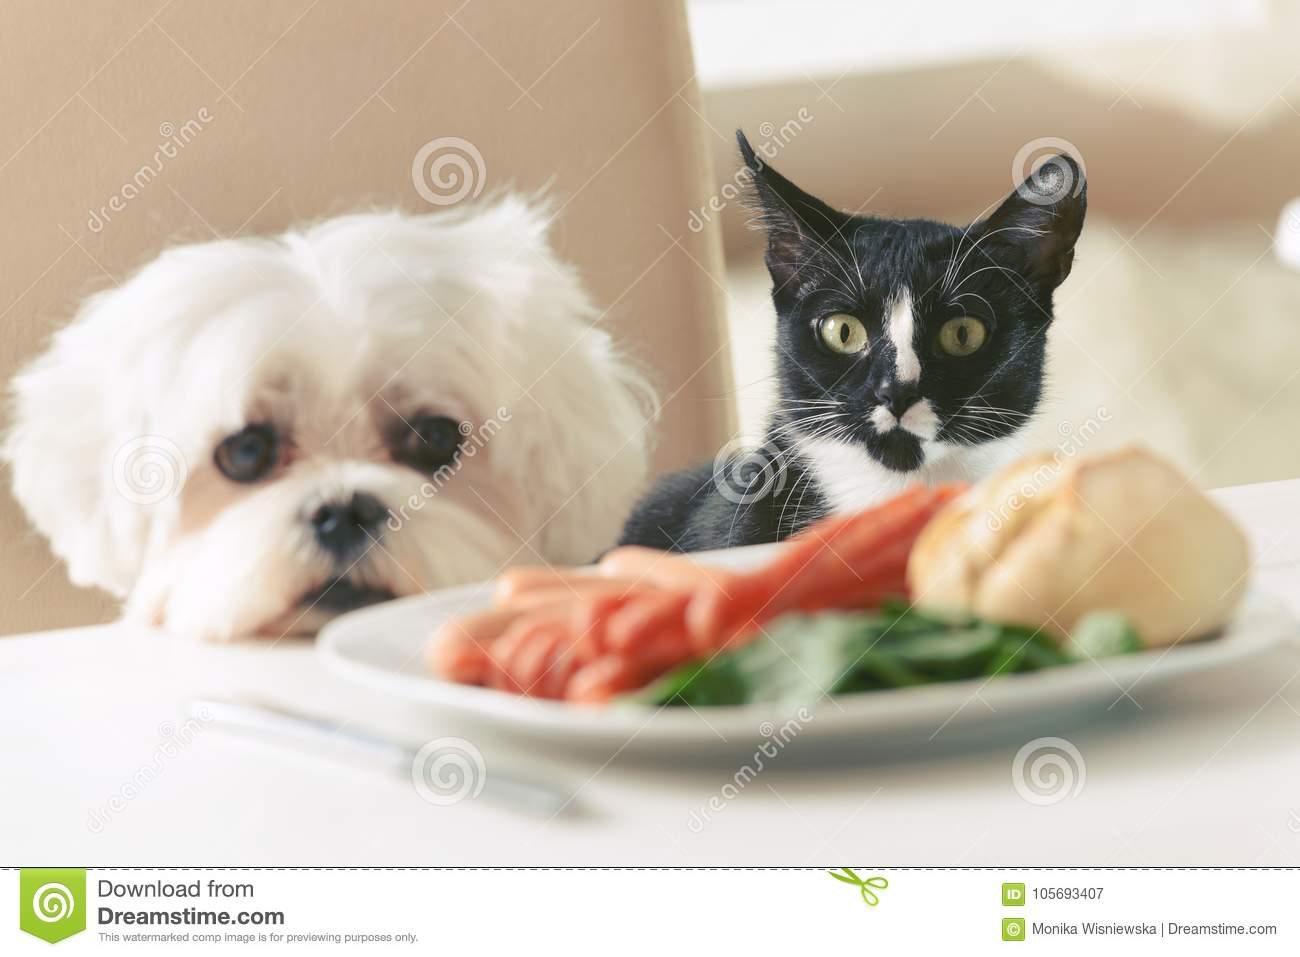 Cute dog and cat asking for food